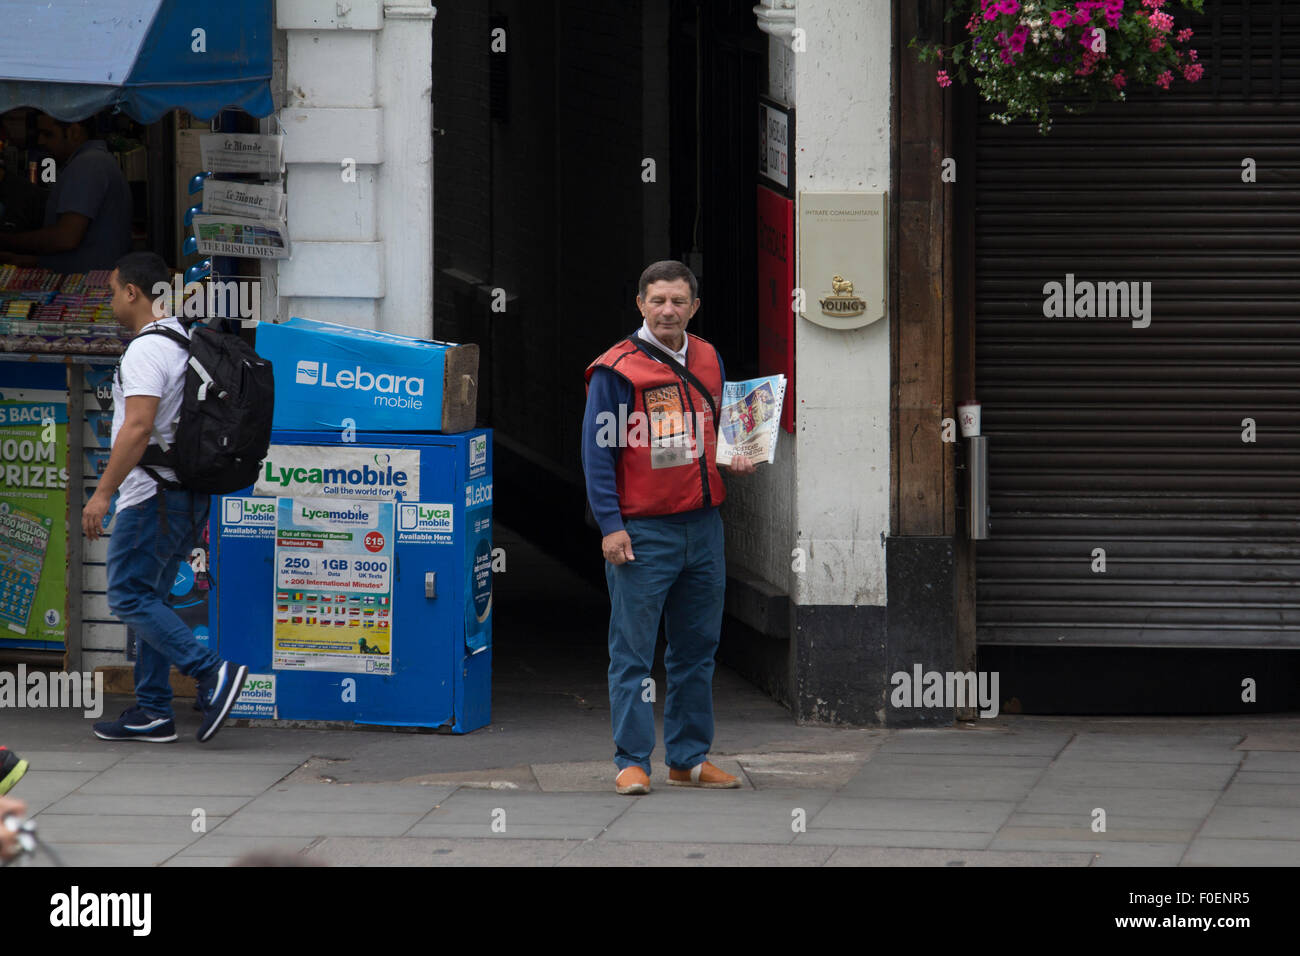 Big Issue magazine seller in central London - Stock Image